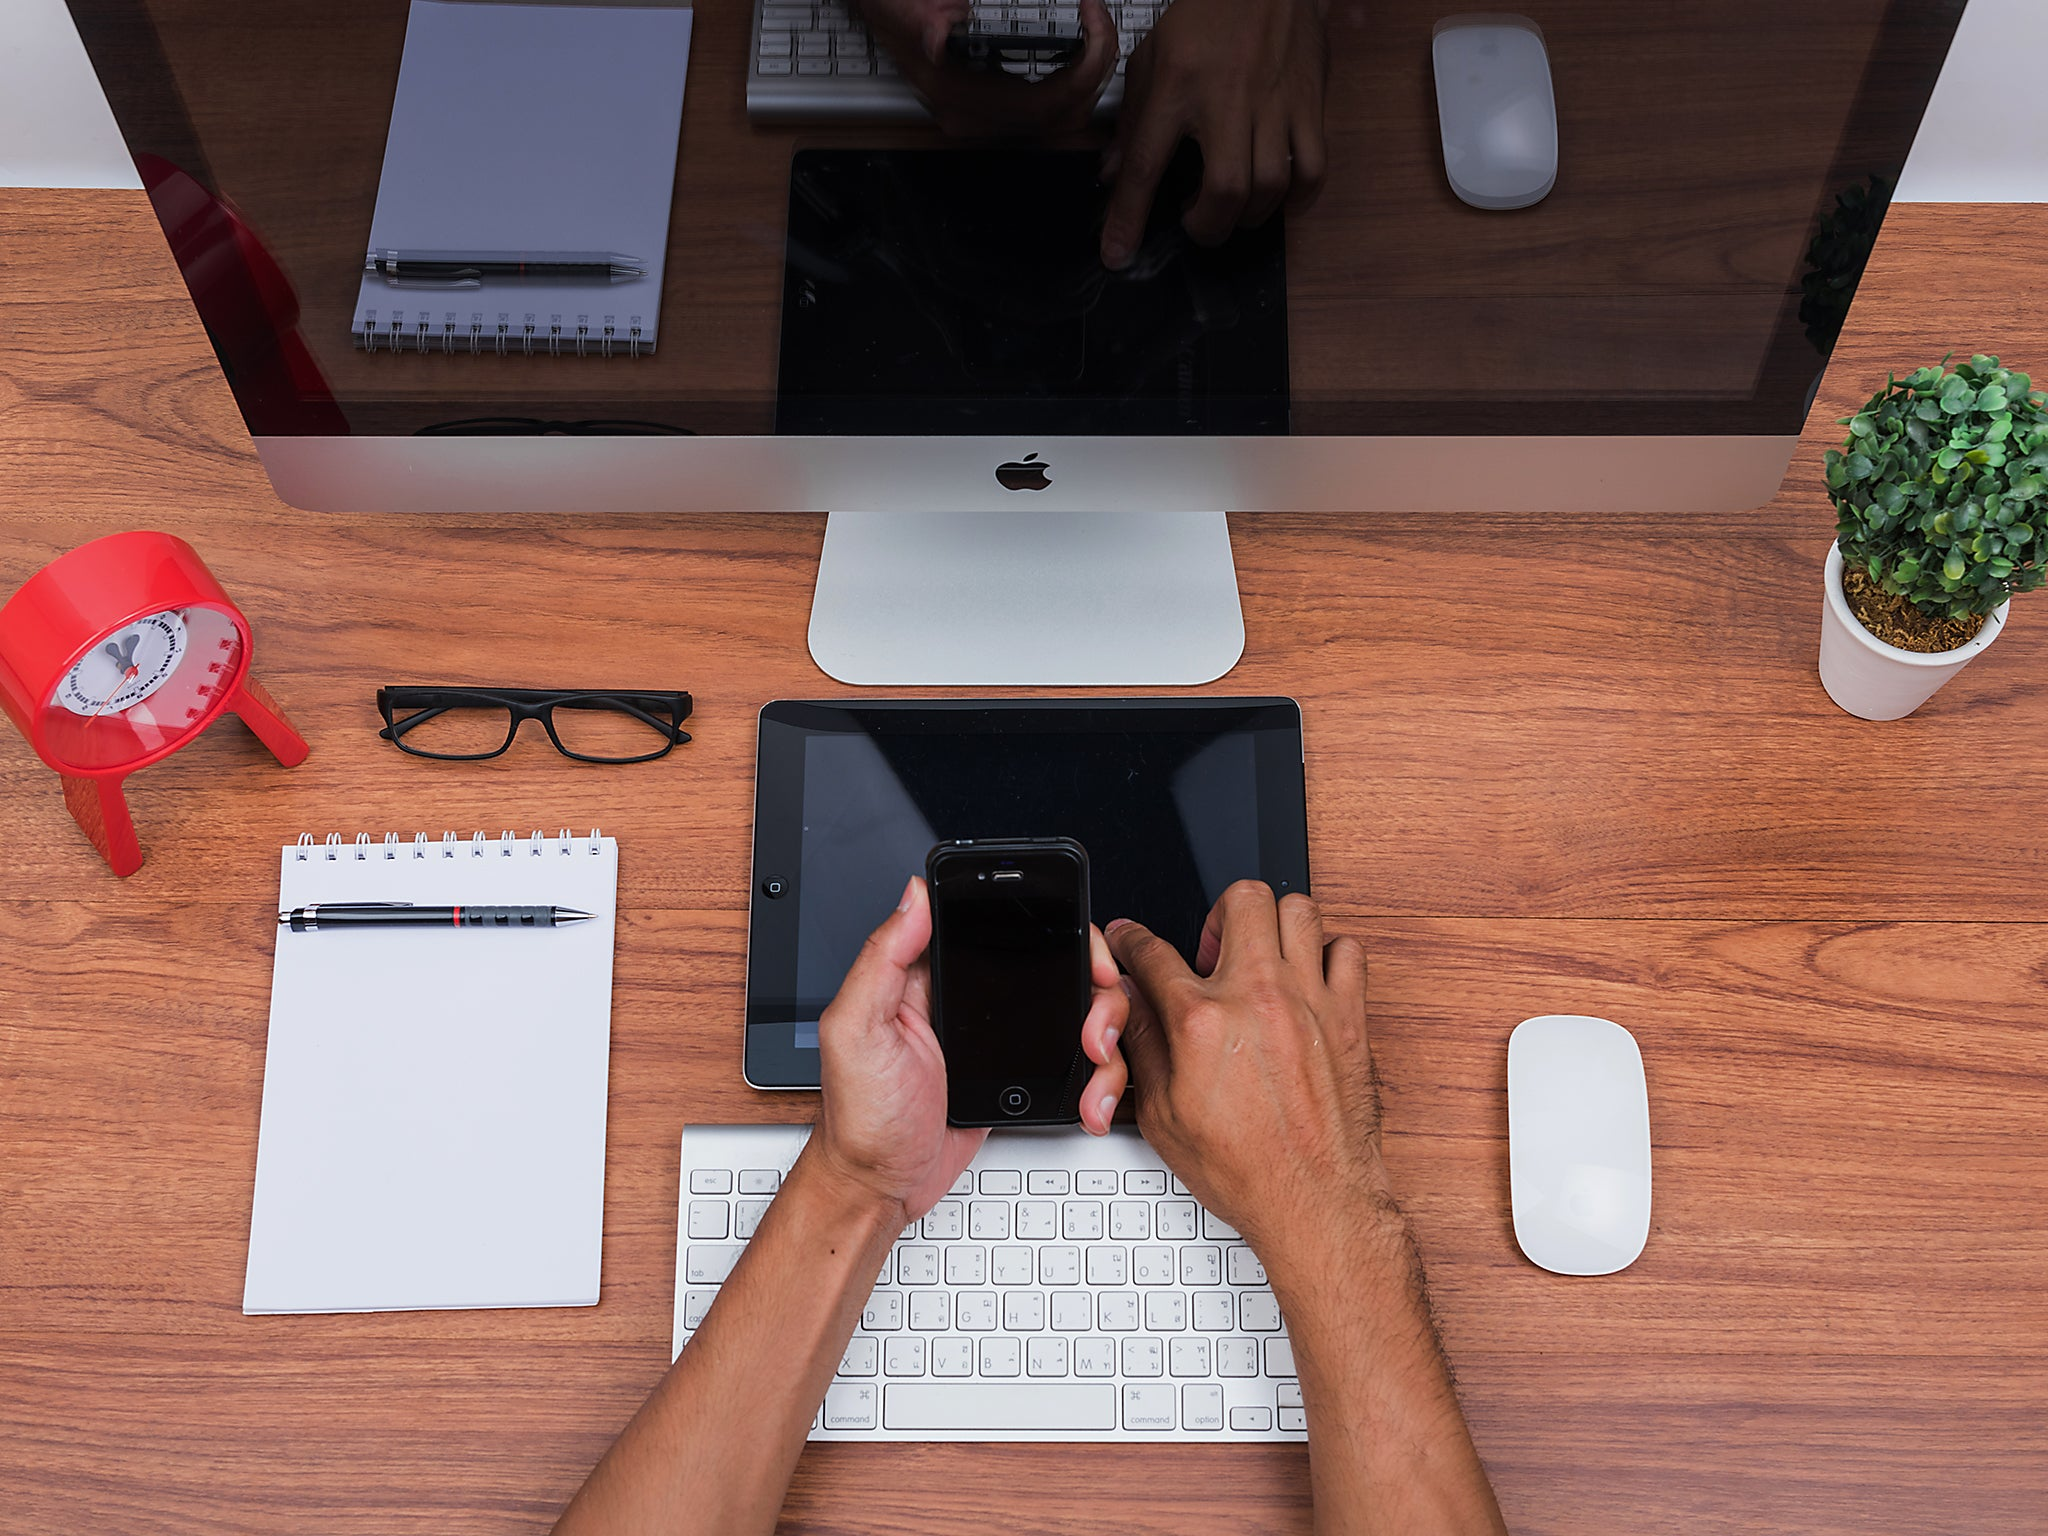 Why multitasking between devices is linked to poor memory, according to an expert